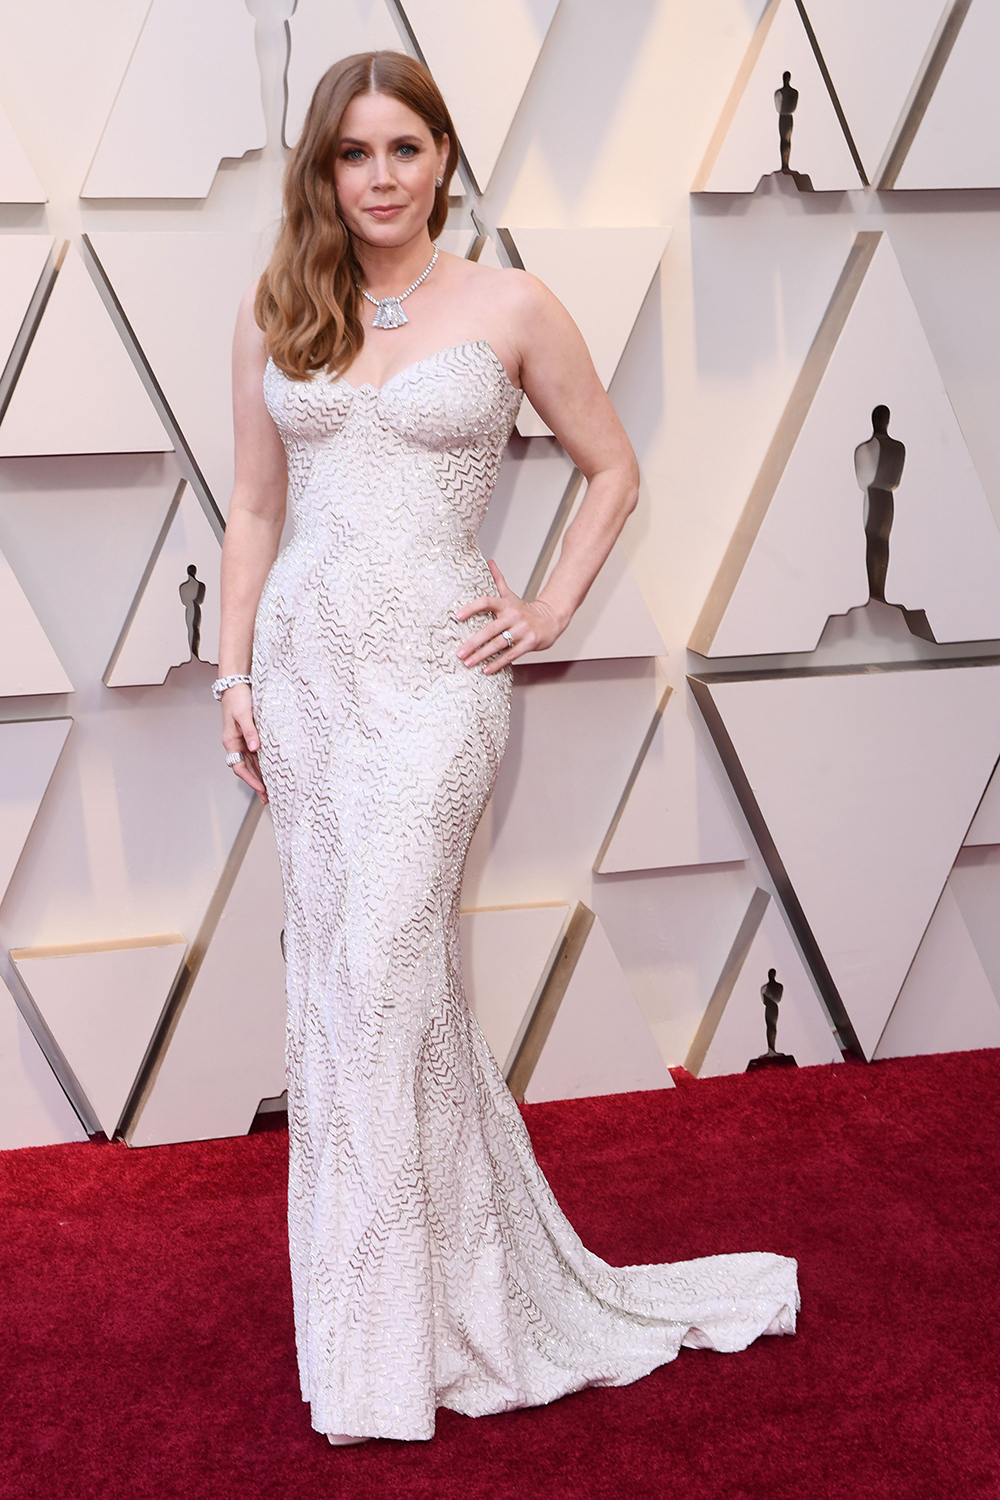 Oscars 2019 Red Carpet The Best Fashion 01 oscars 2019 red carpet Oscars 2019 Red Carpet : The Best Fashion Oscars 2019 Red Carpet The Best Fashion 01